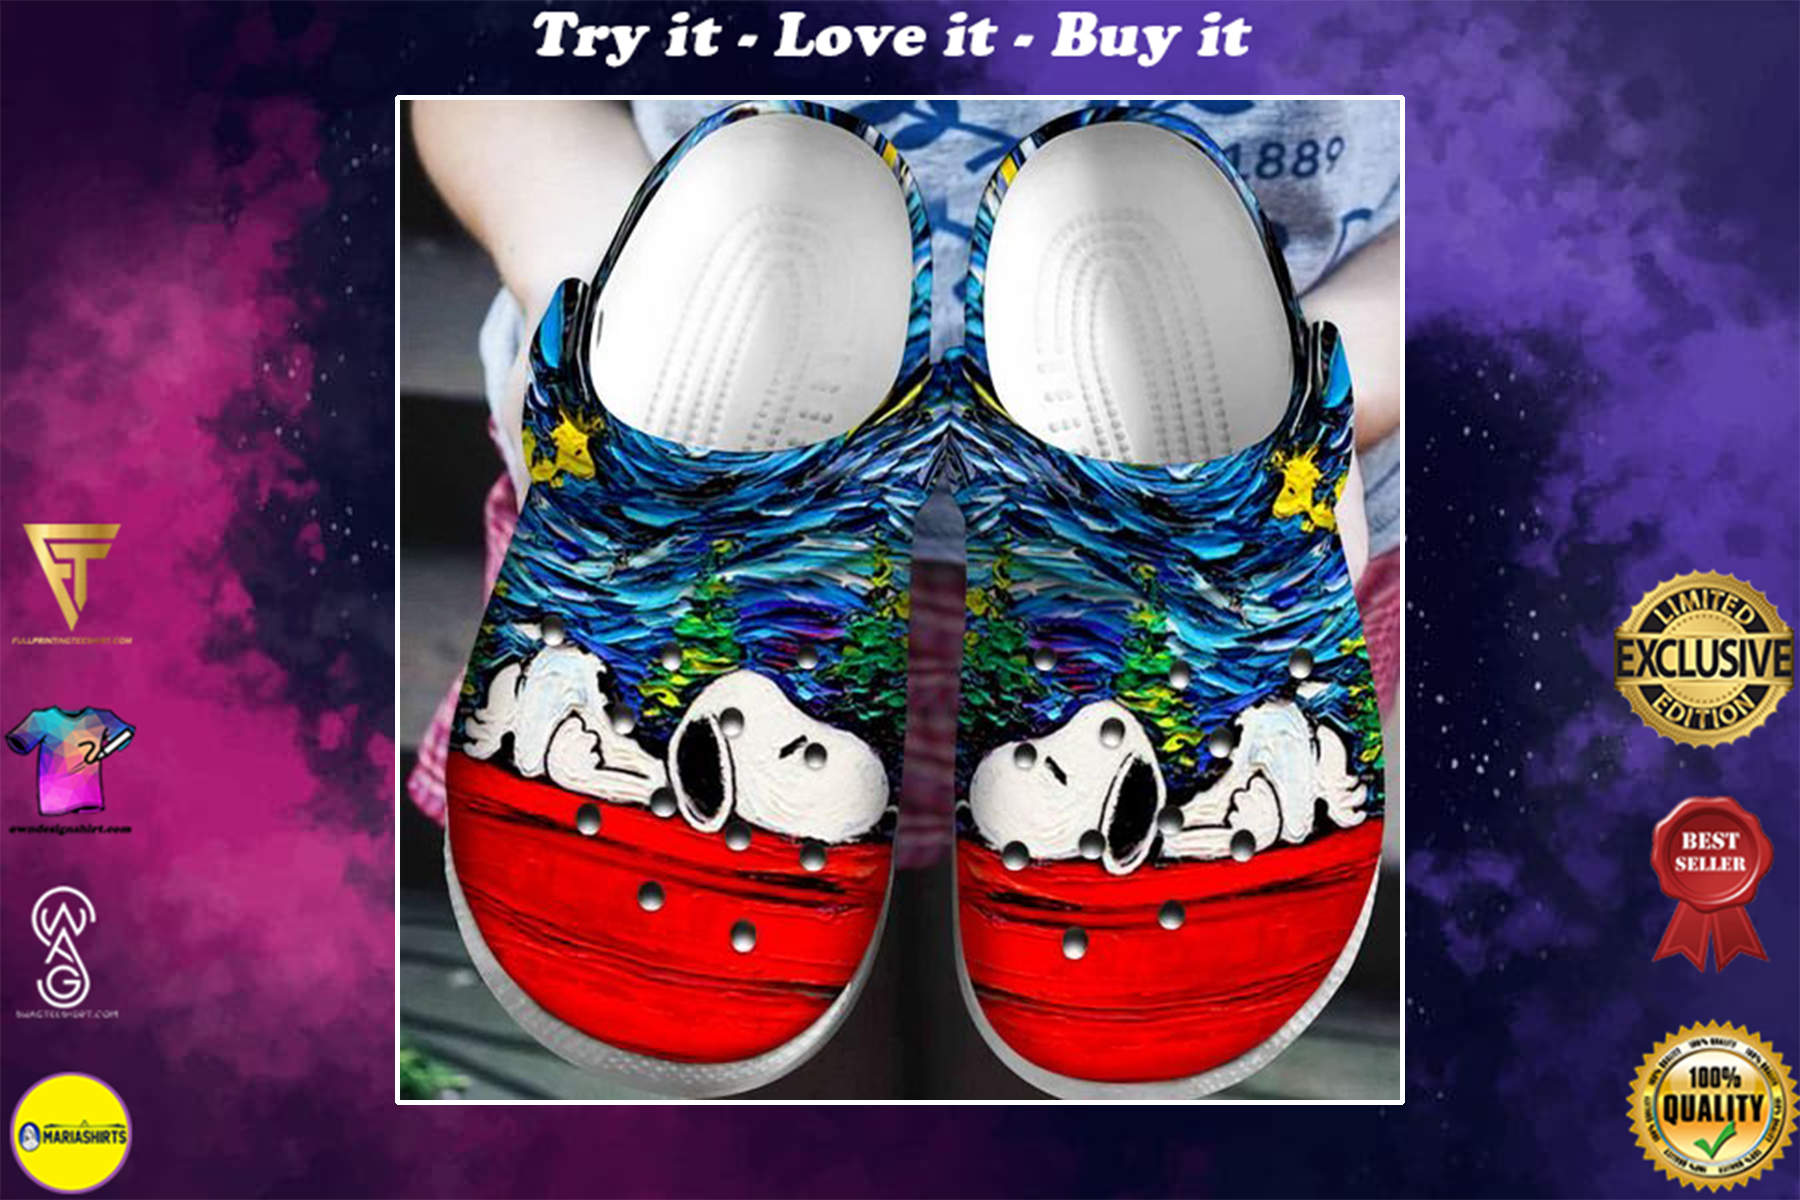 starry night vincent van gogh snoopy crocband clog - Copy